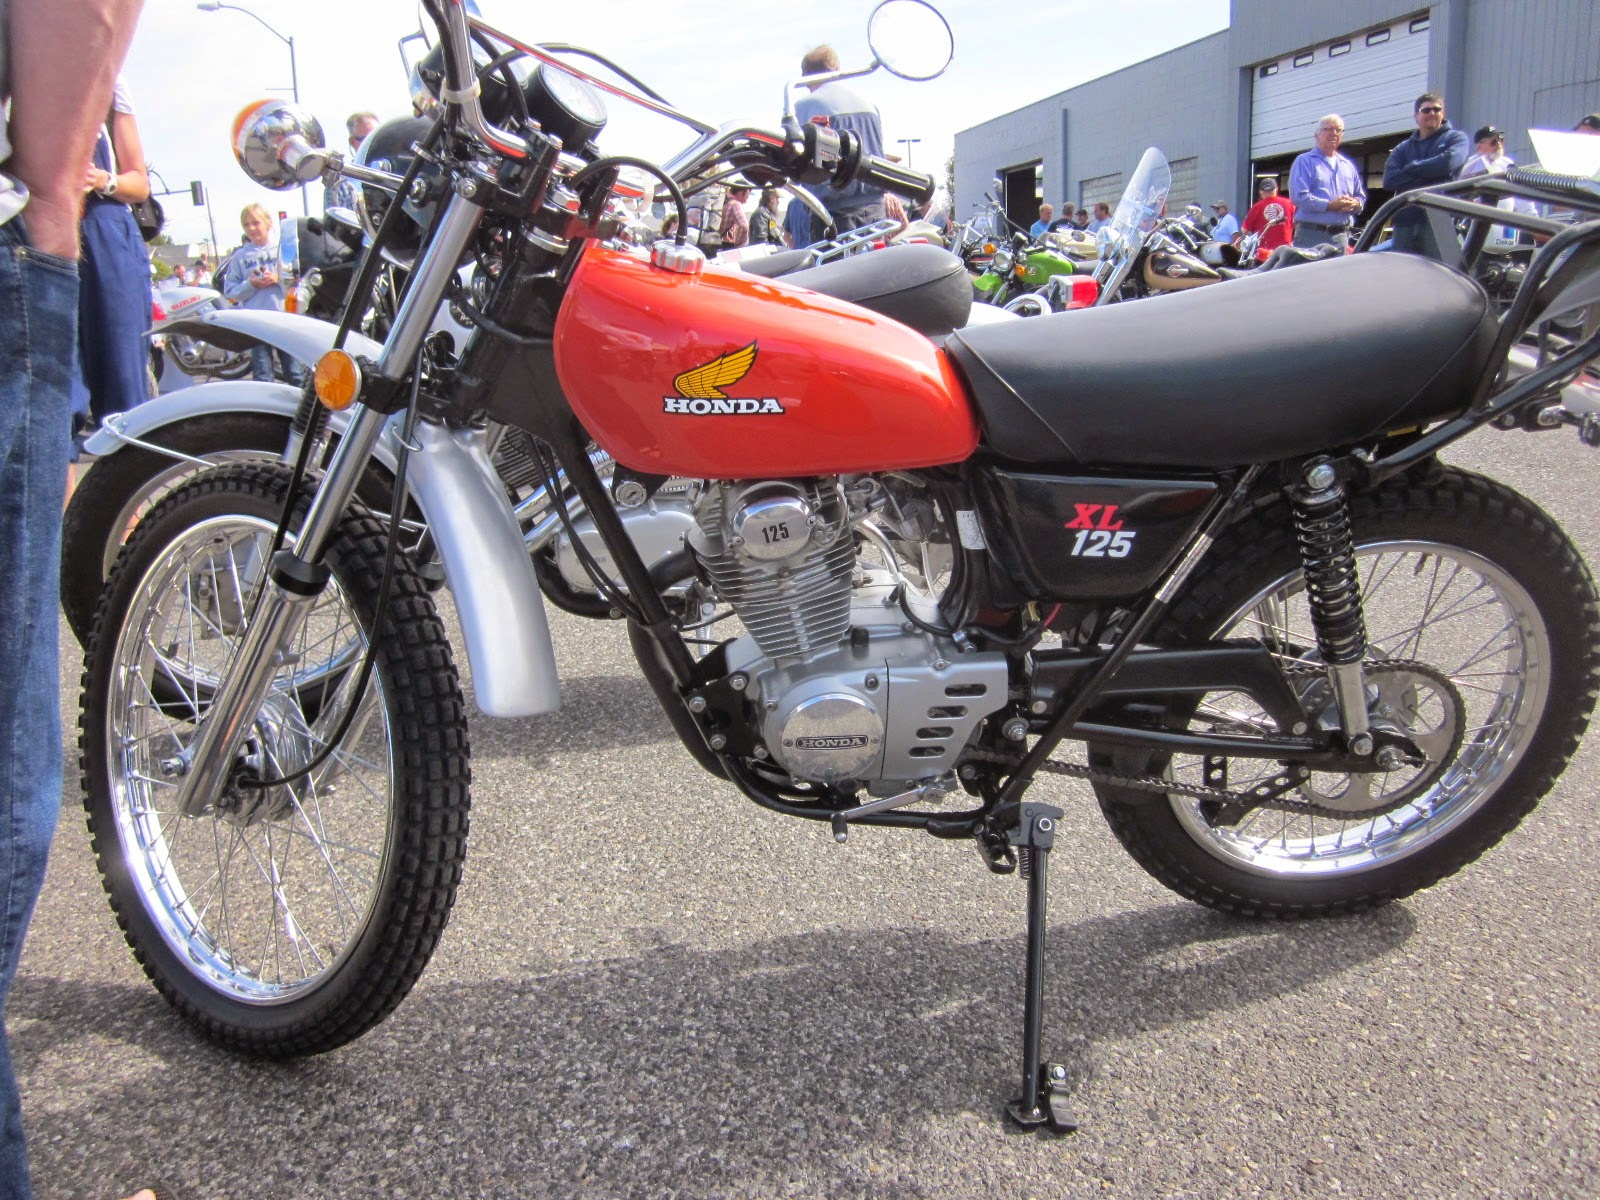 oldmotodude 1975 honda xl125 on display at the 2014 retro. Black Bedroom Furniture Sets. Home Design Ideas